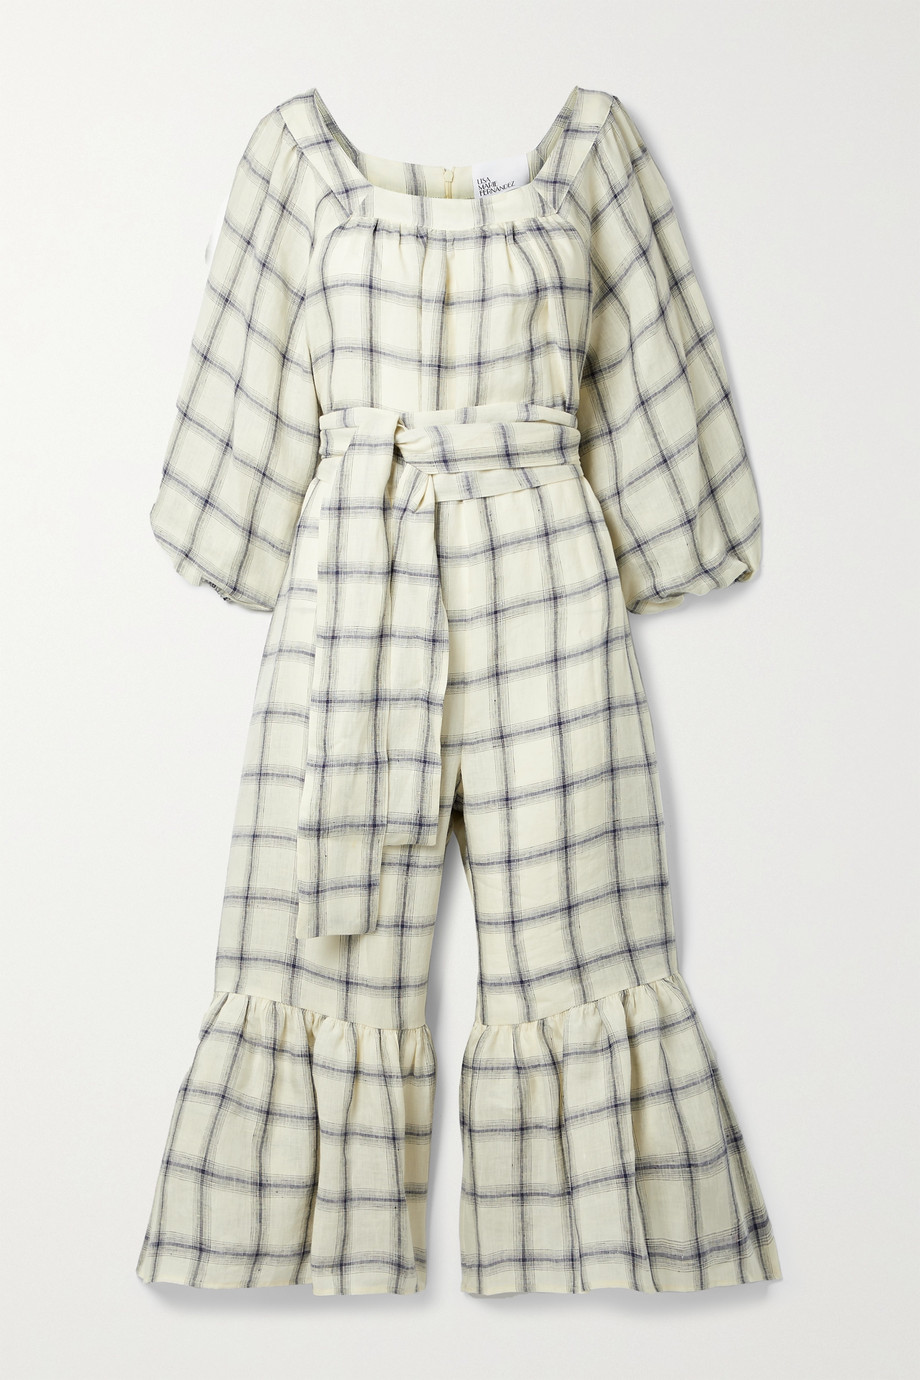 LISA MARIE FERNANDEZ + NET SUSTAIN Laure belted checked linen jumpsuit